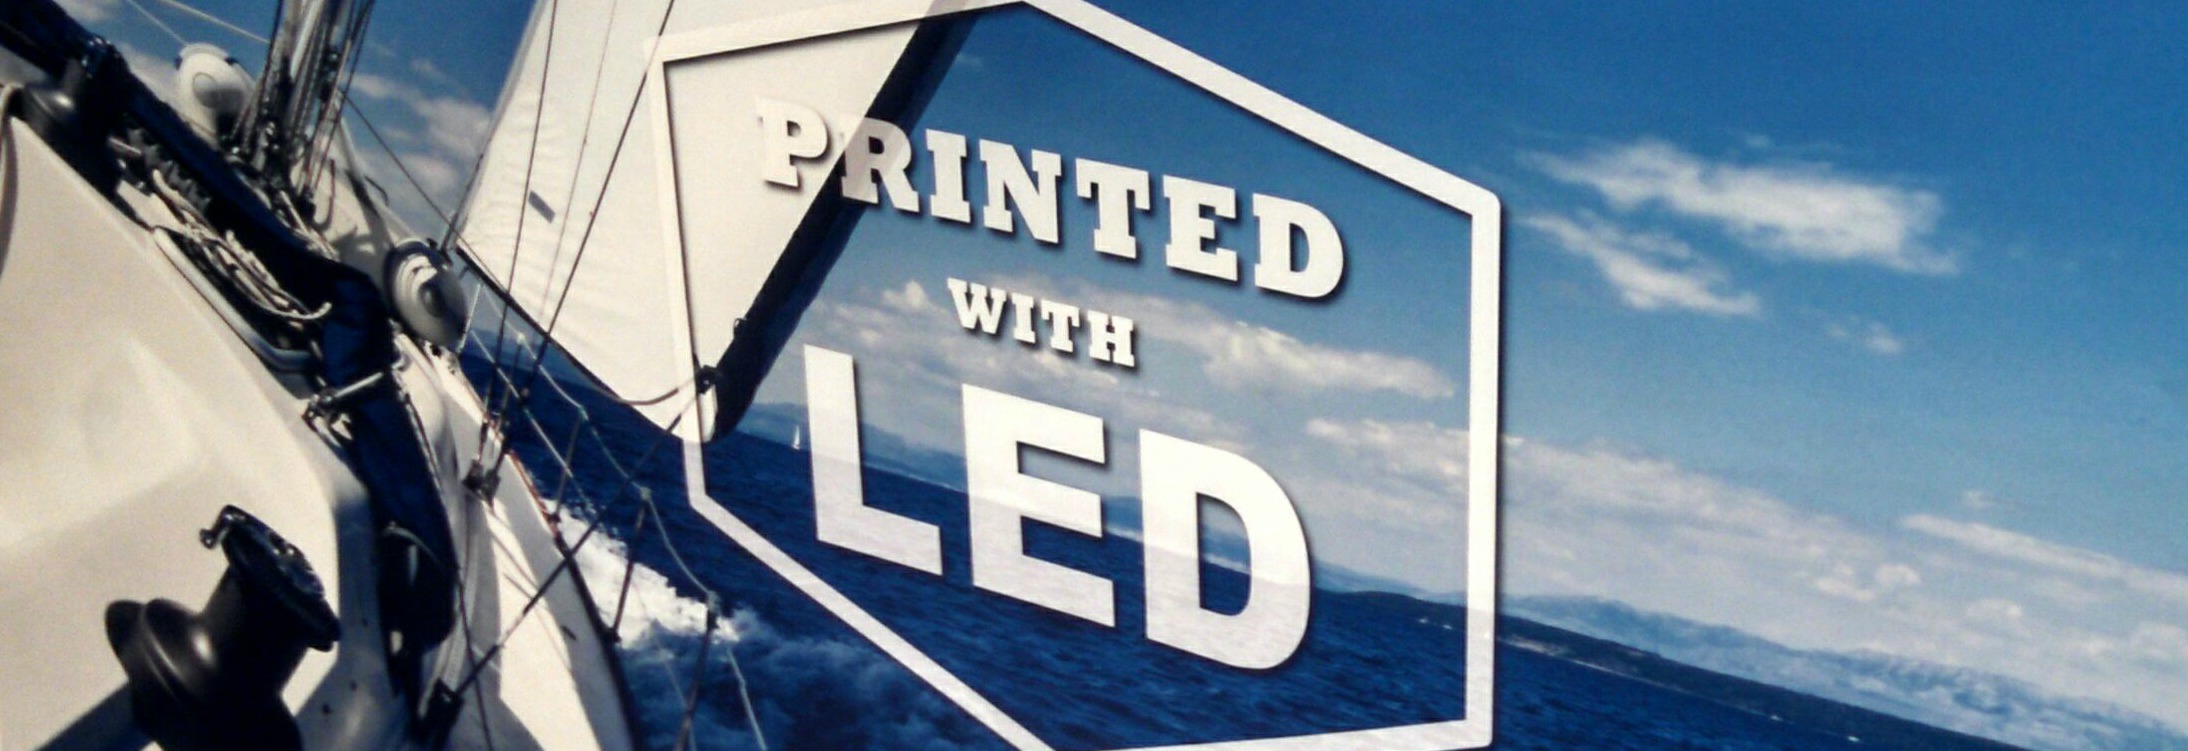 Printed with LED